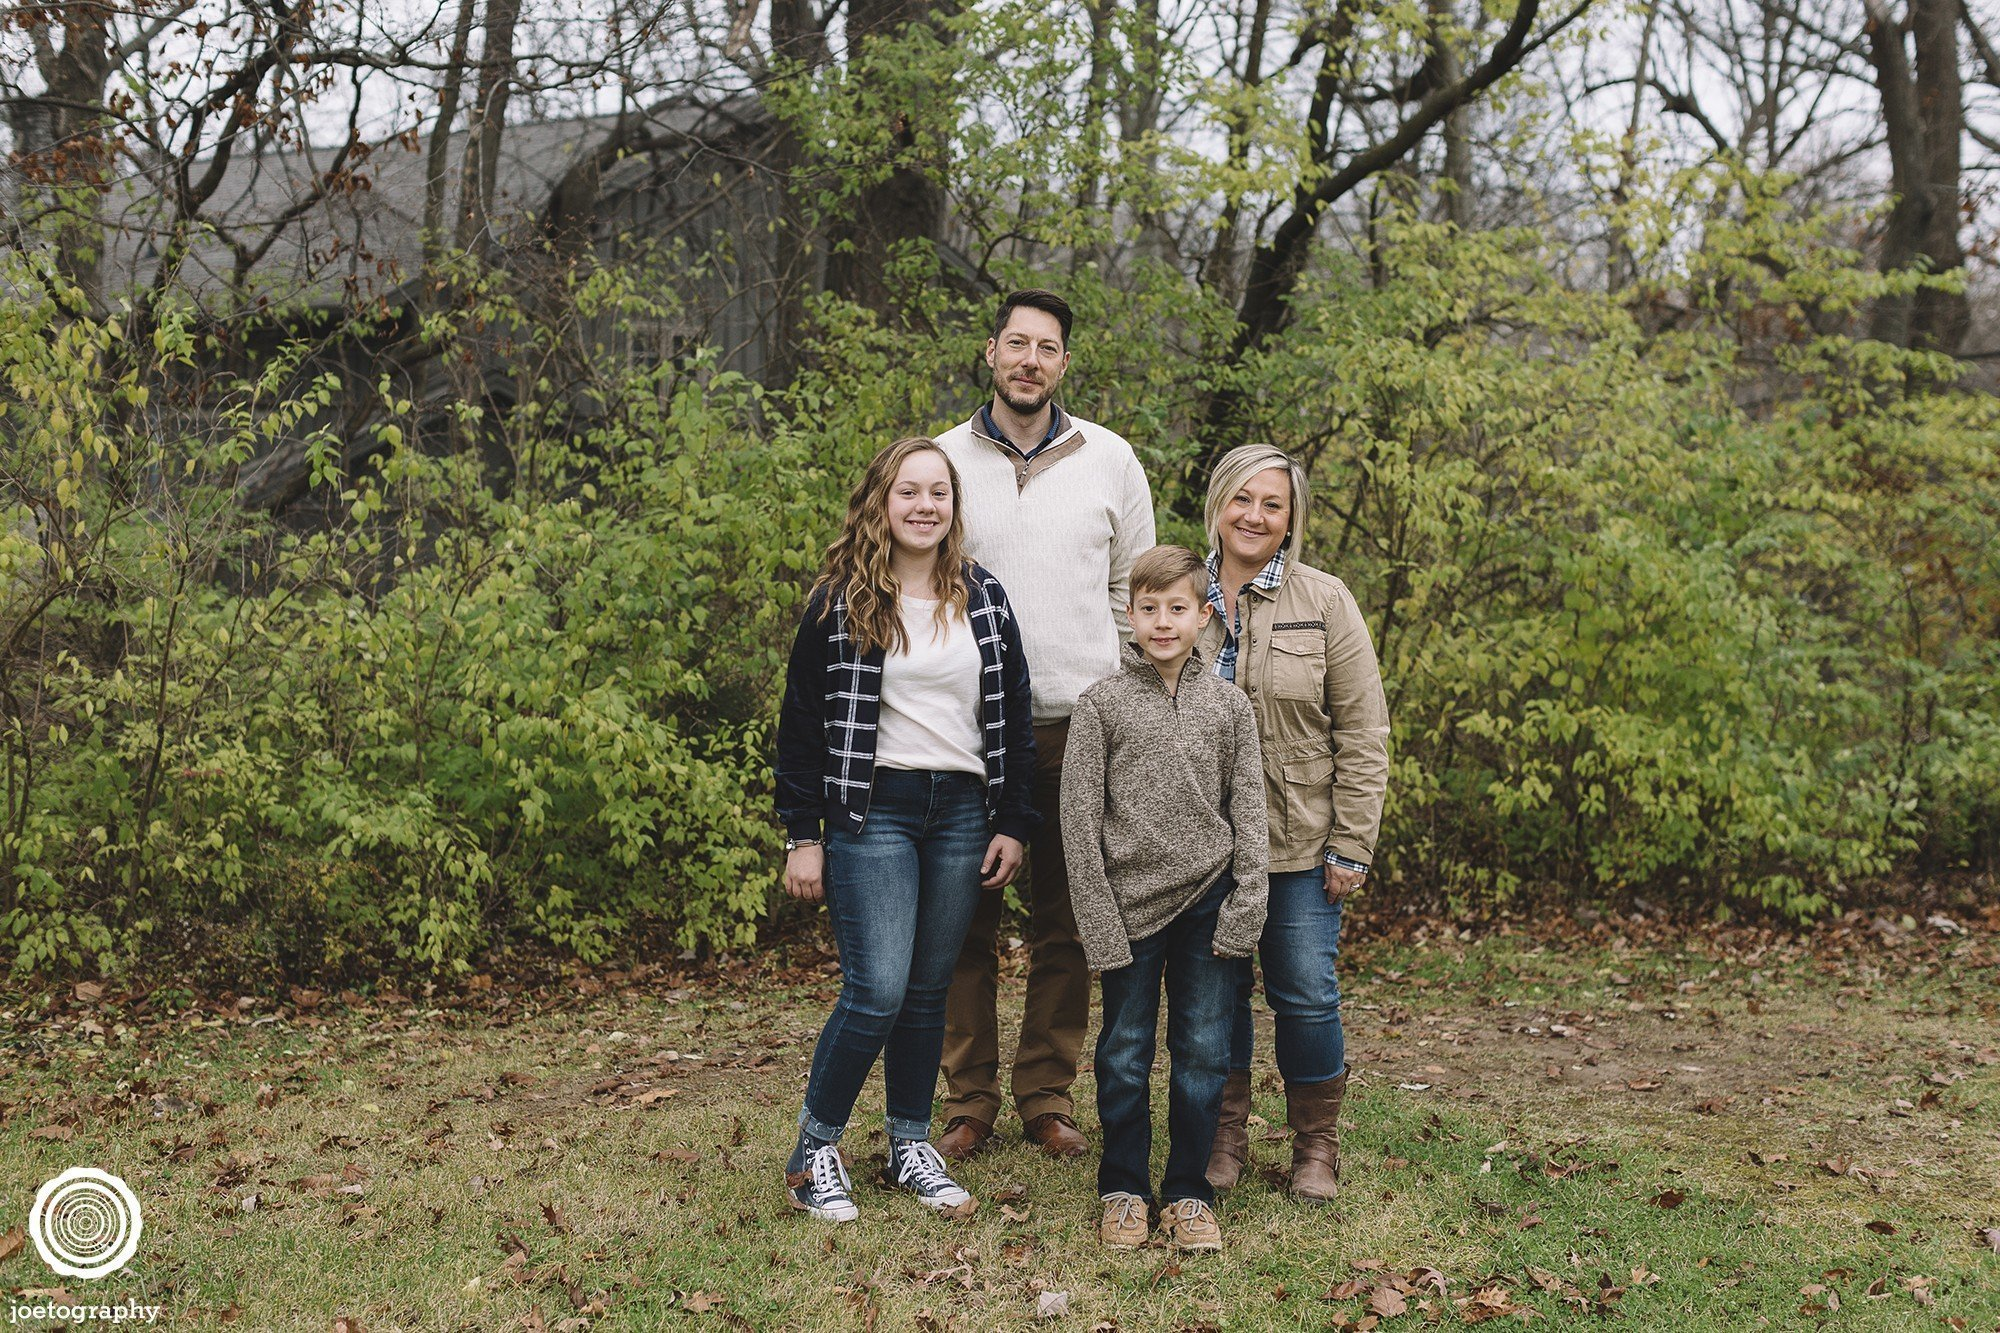 Teeple Family Photographs | Indianapolis - 6